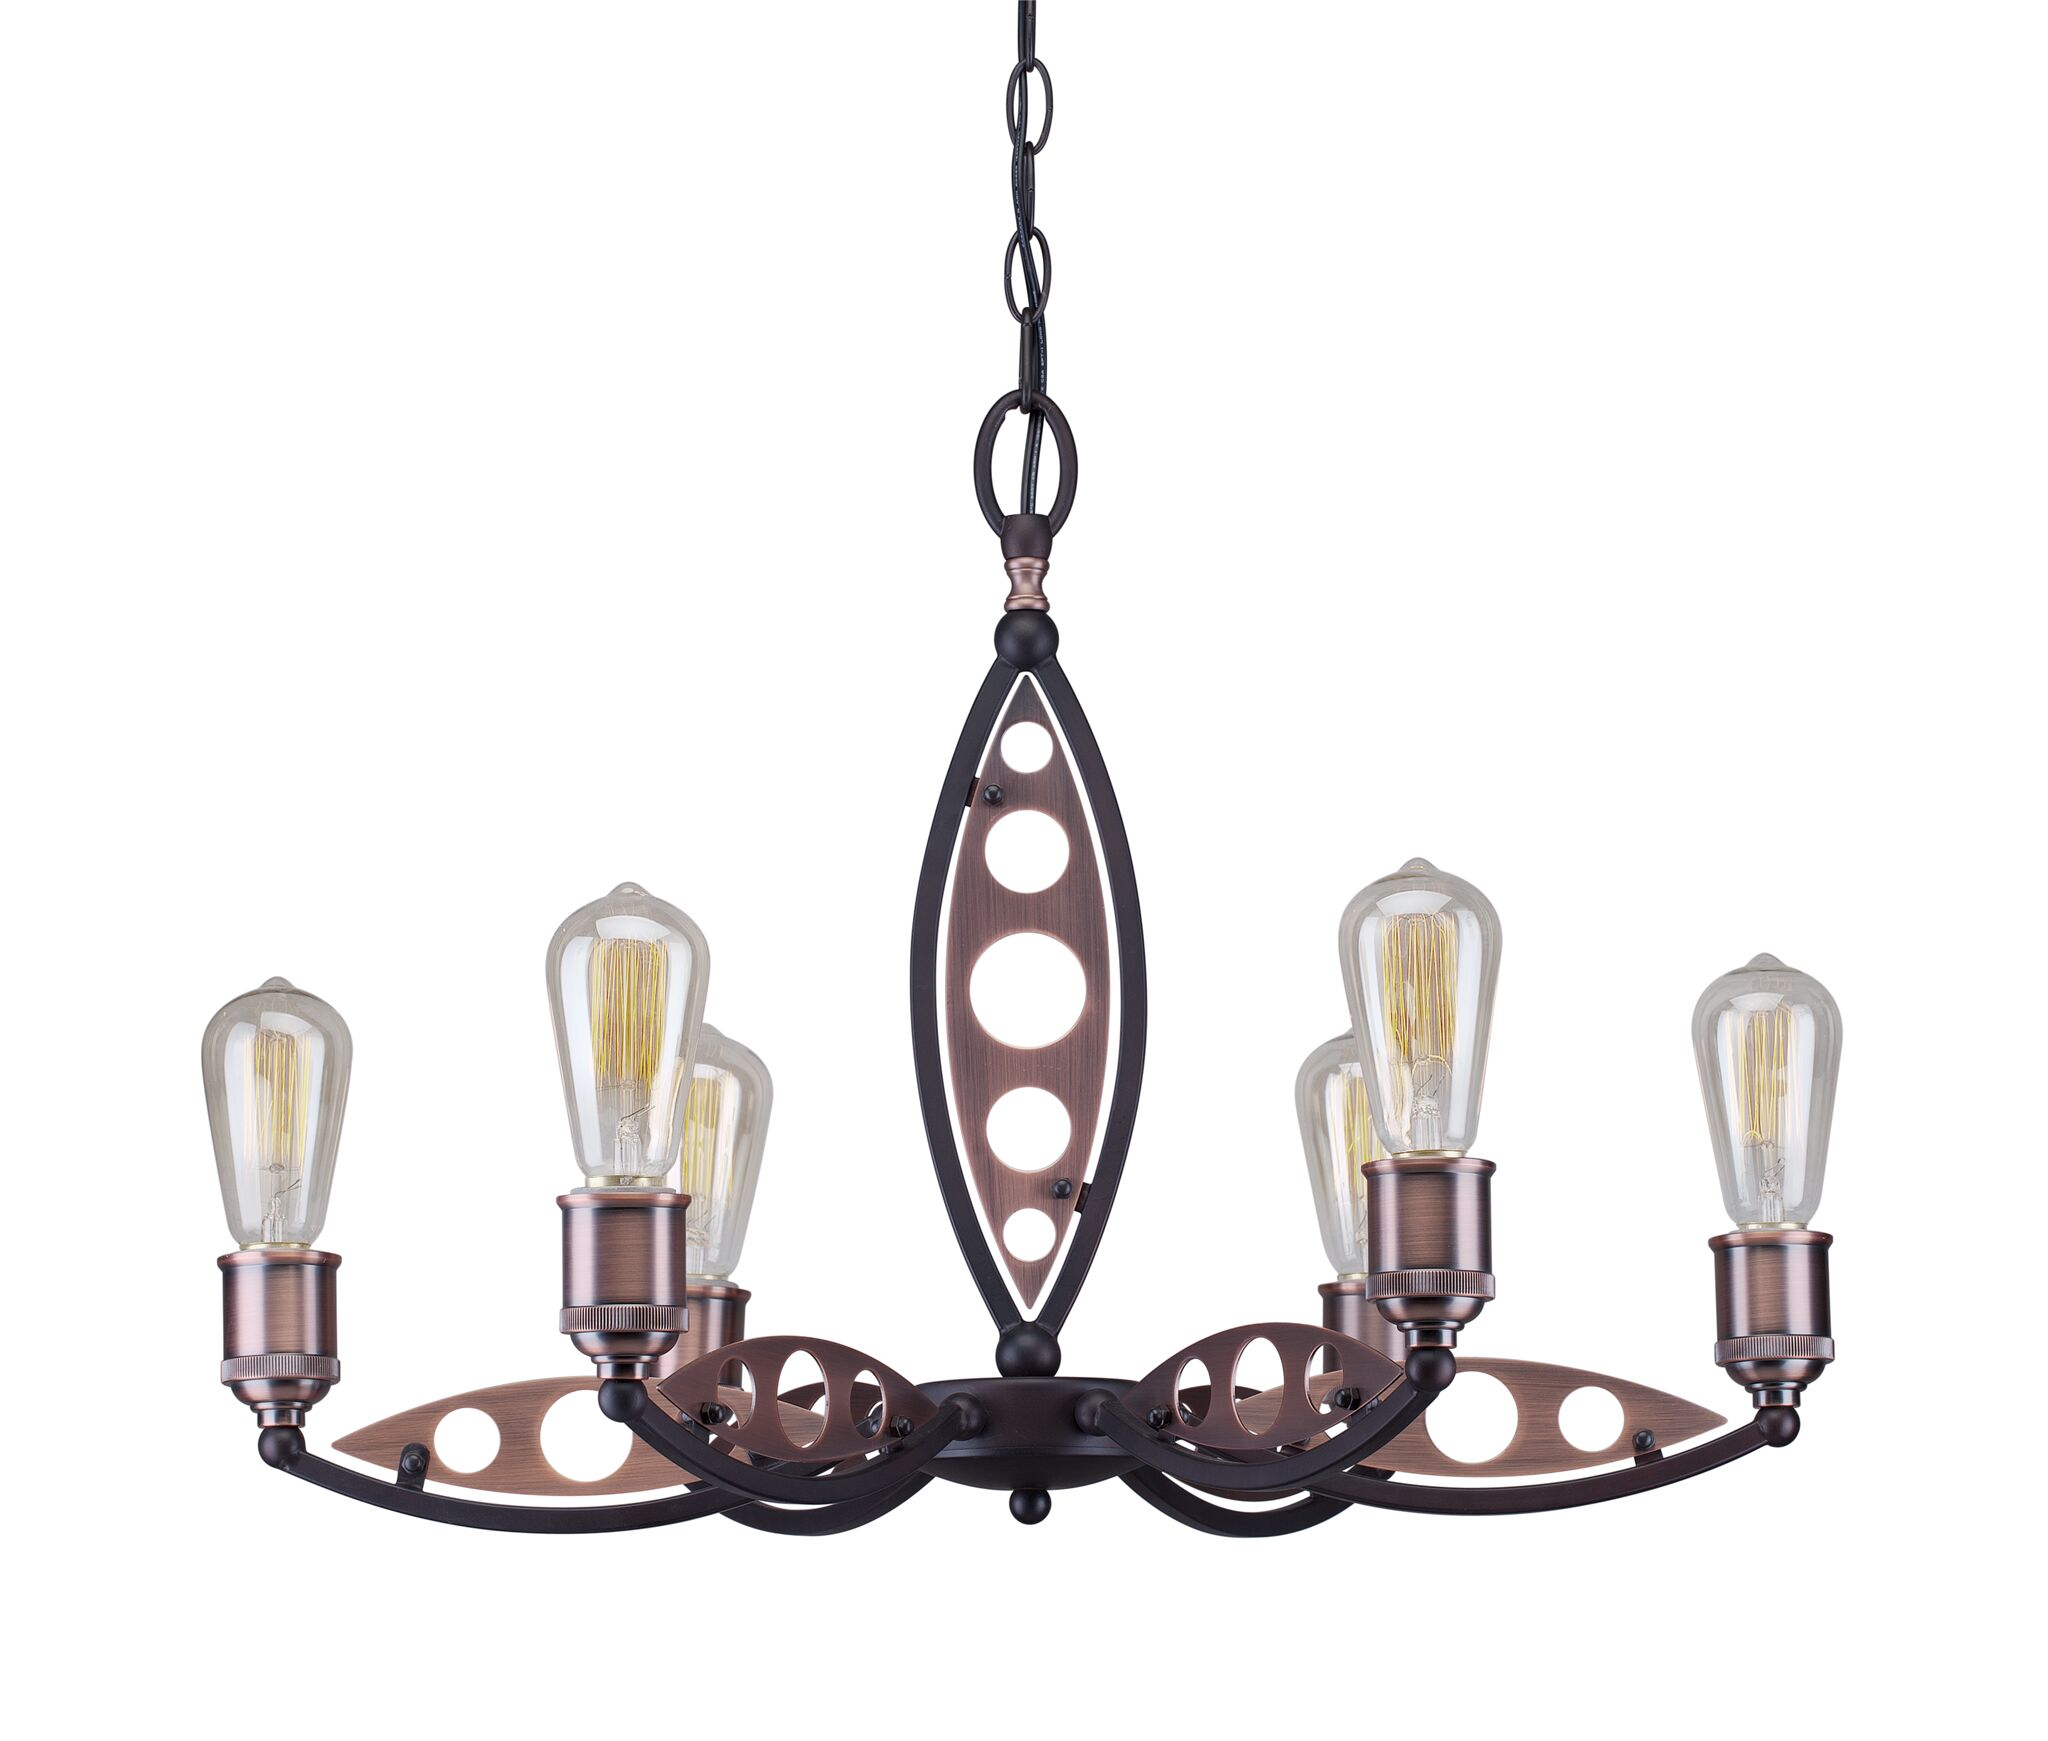 Glover 6-Light Candle Style Chandelier